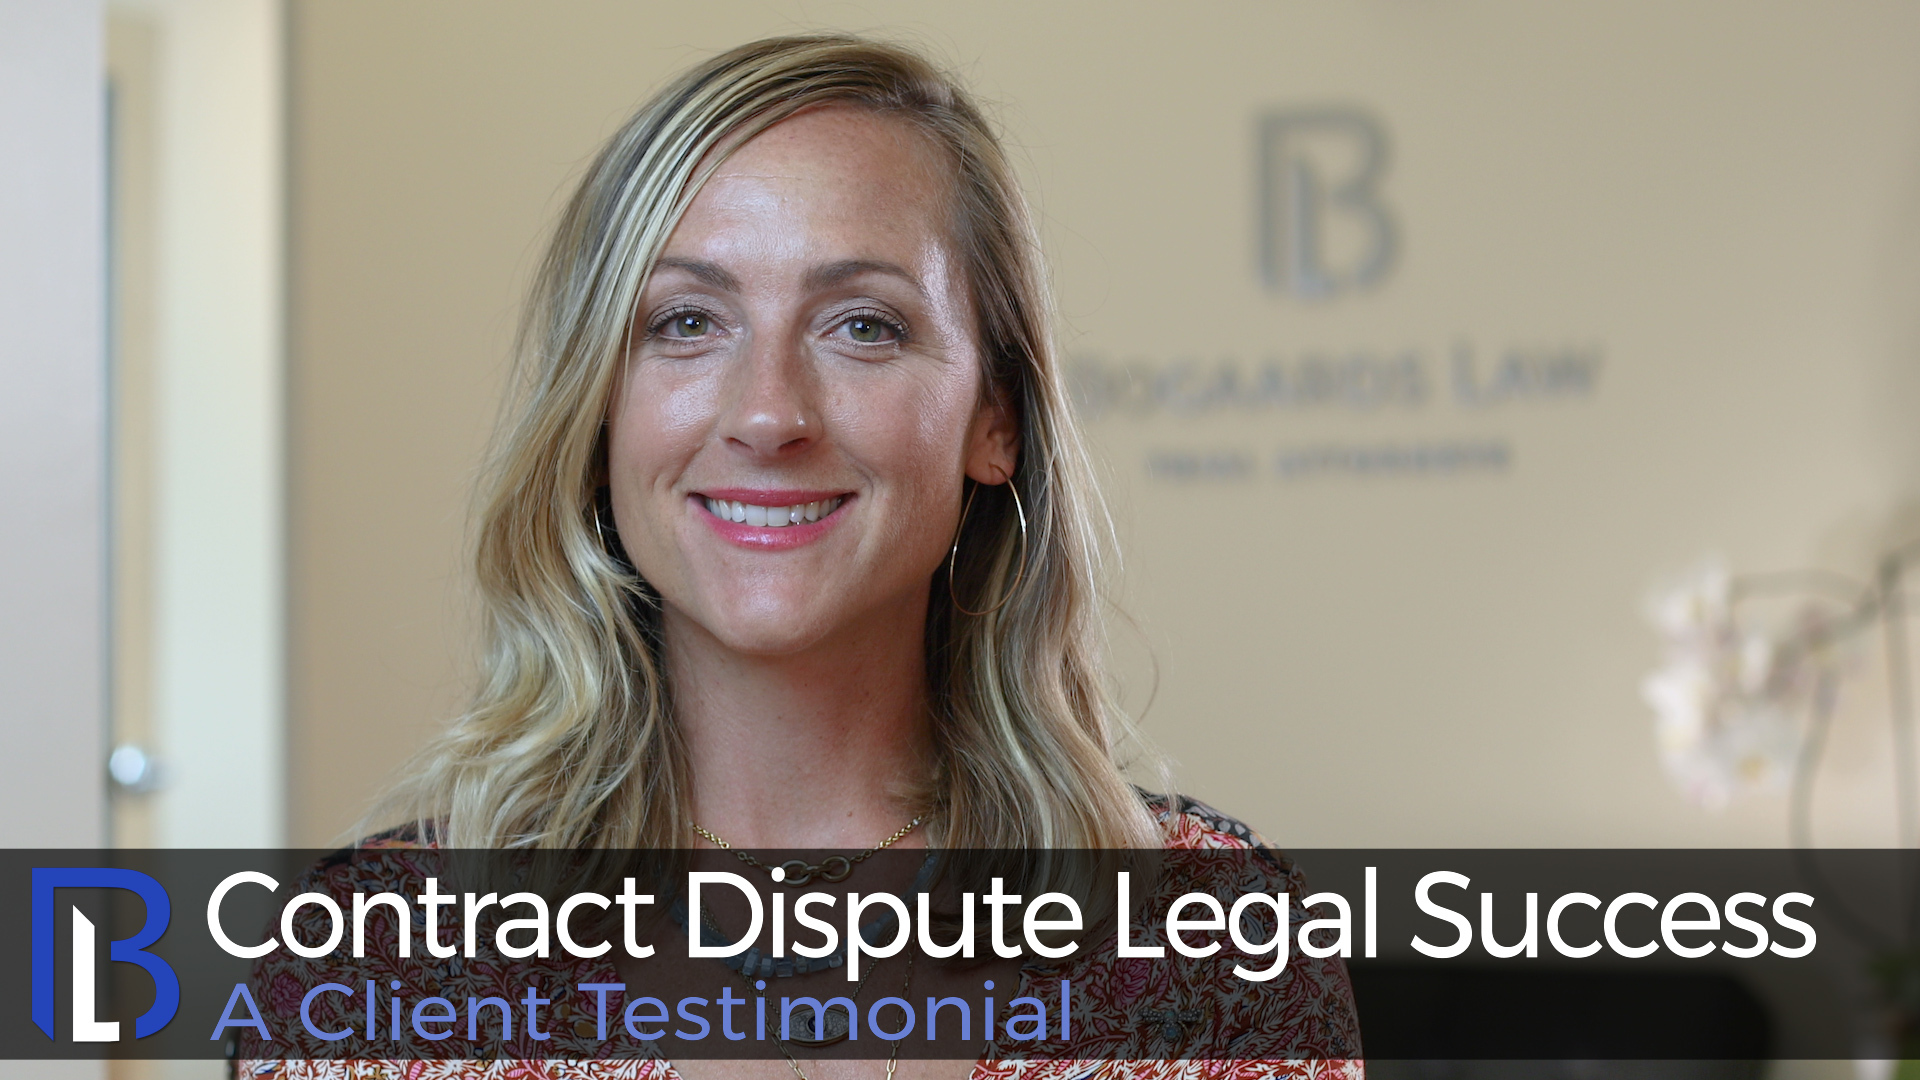 Contract Dispute Legal Success